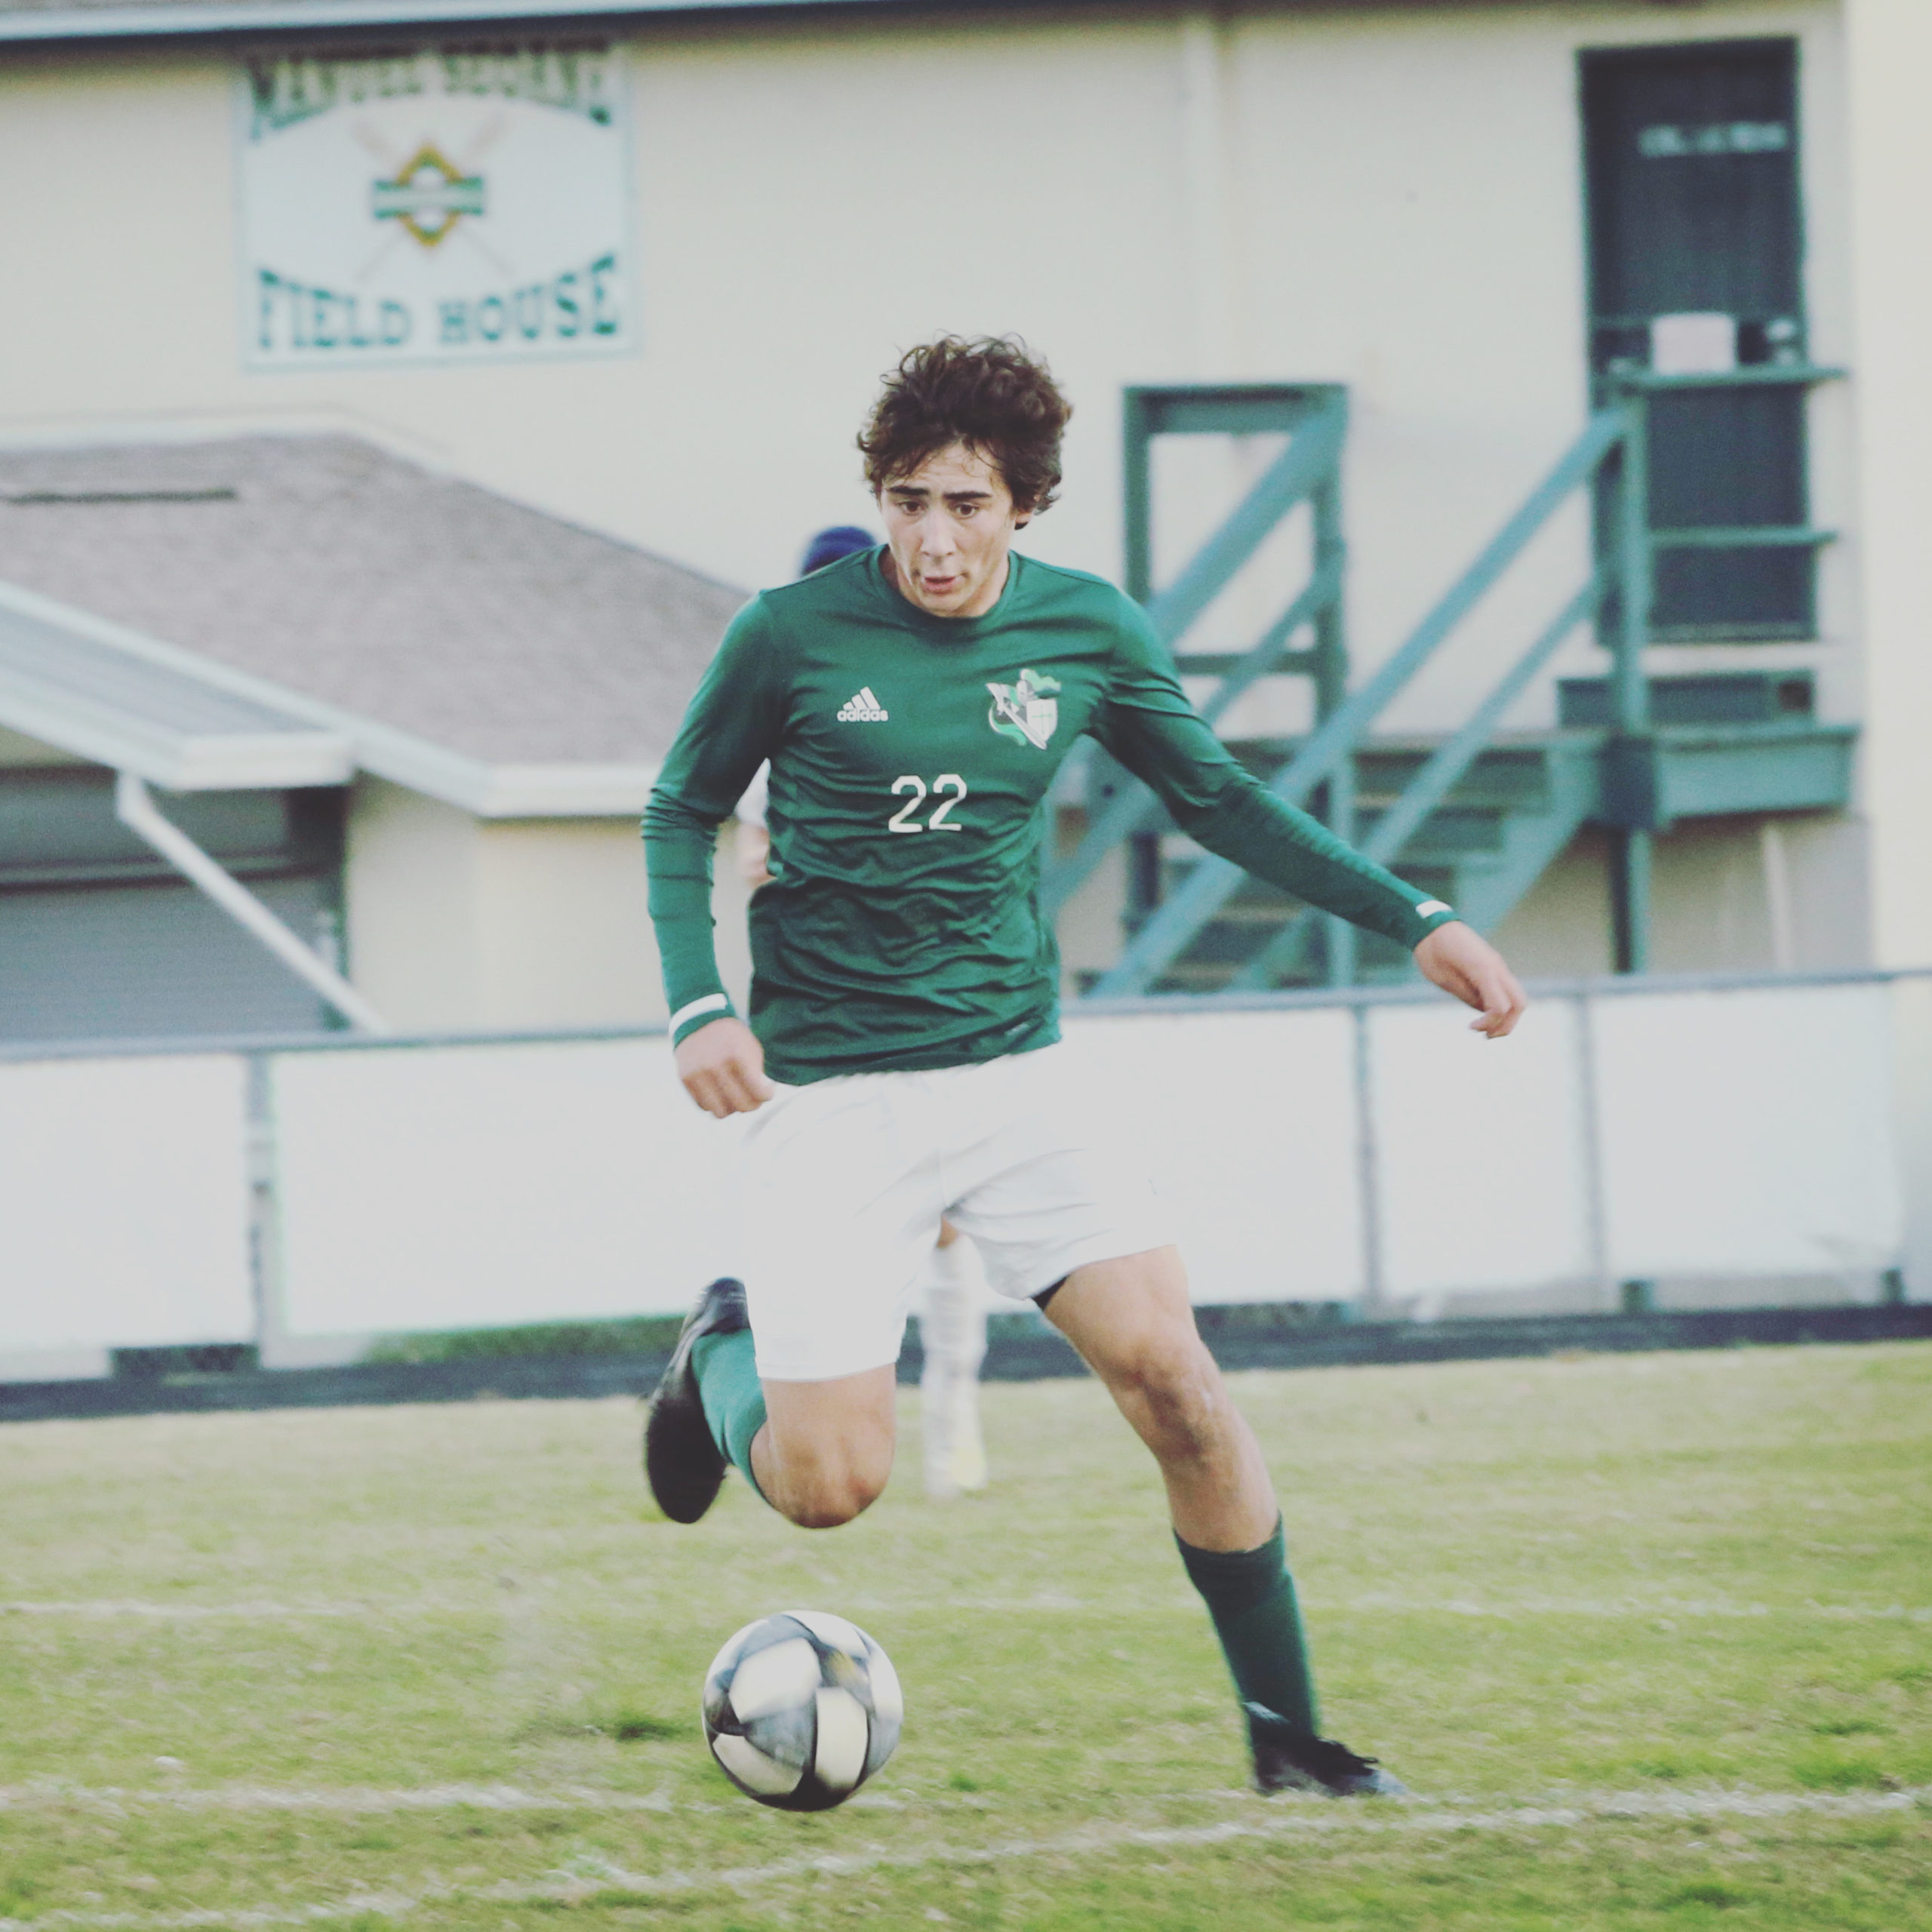 Tampa Catholic forward Marcello Valbuena named Mr. Soccer